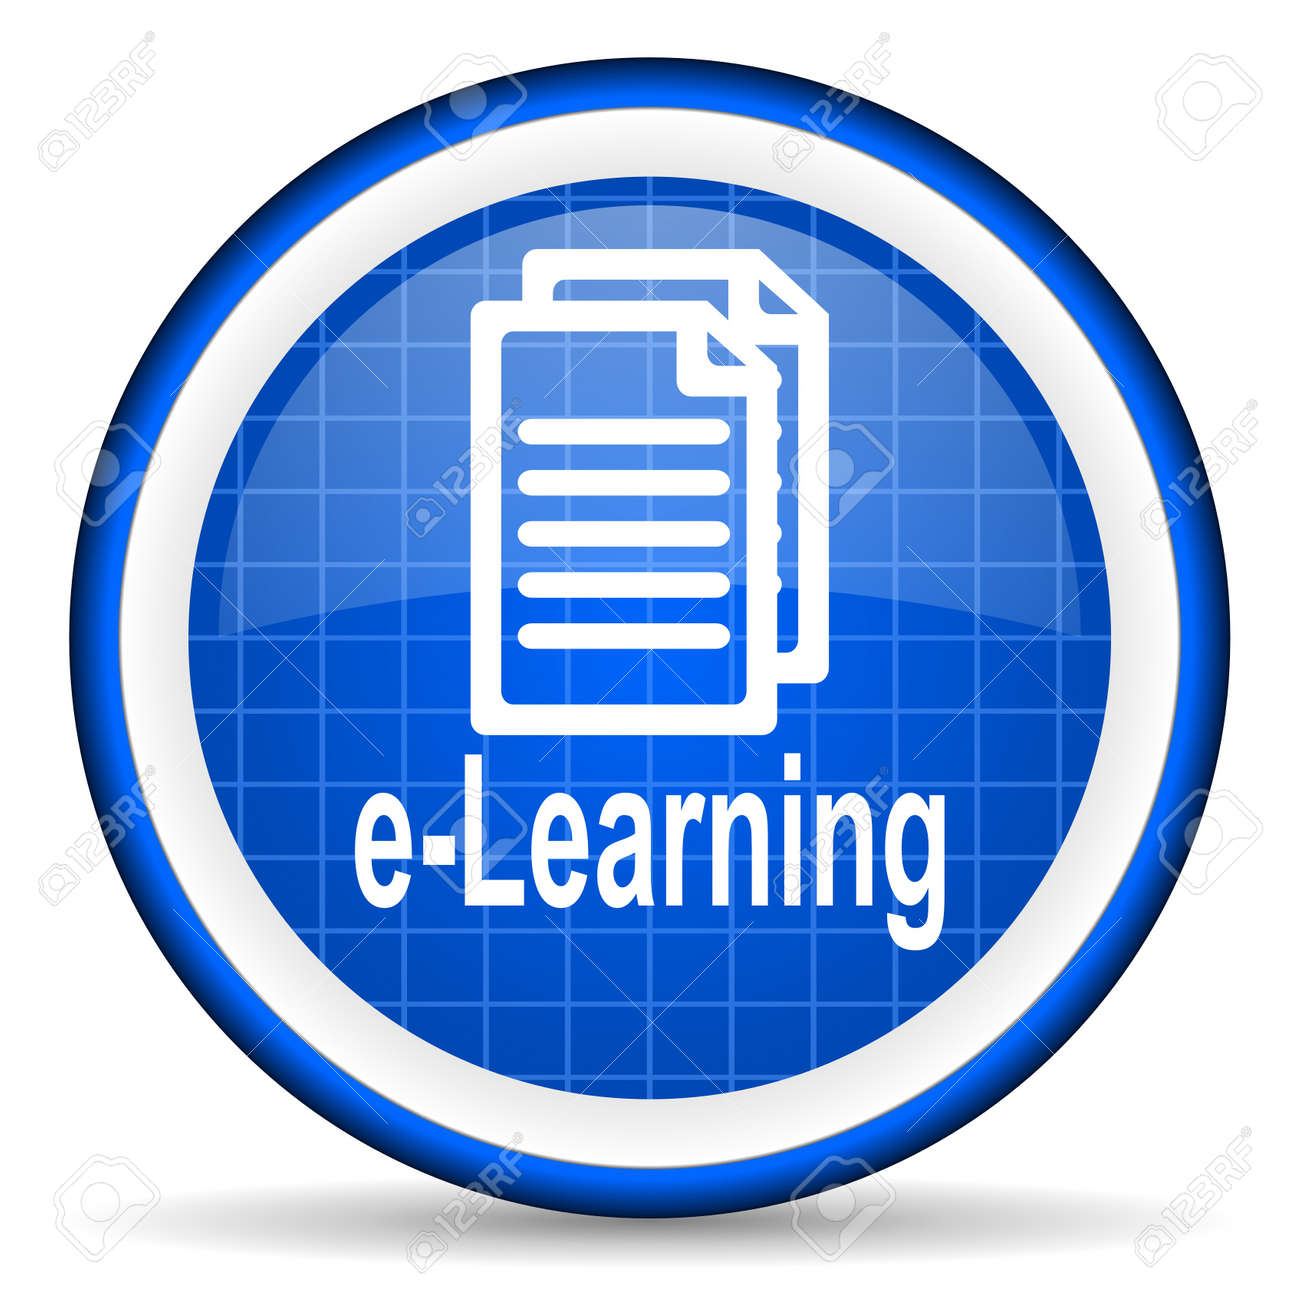 e-learning blue glossy icon on white background Stock Photo - 16581439